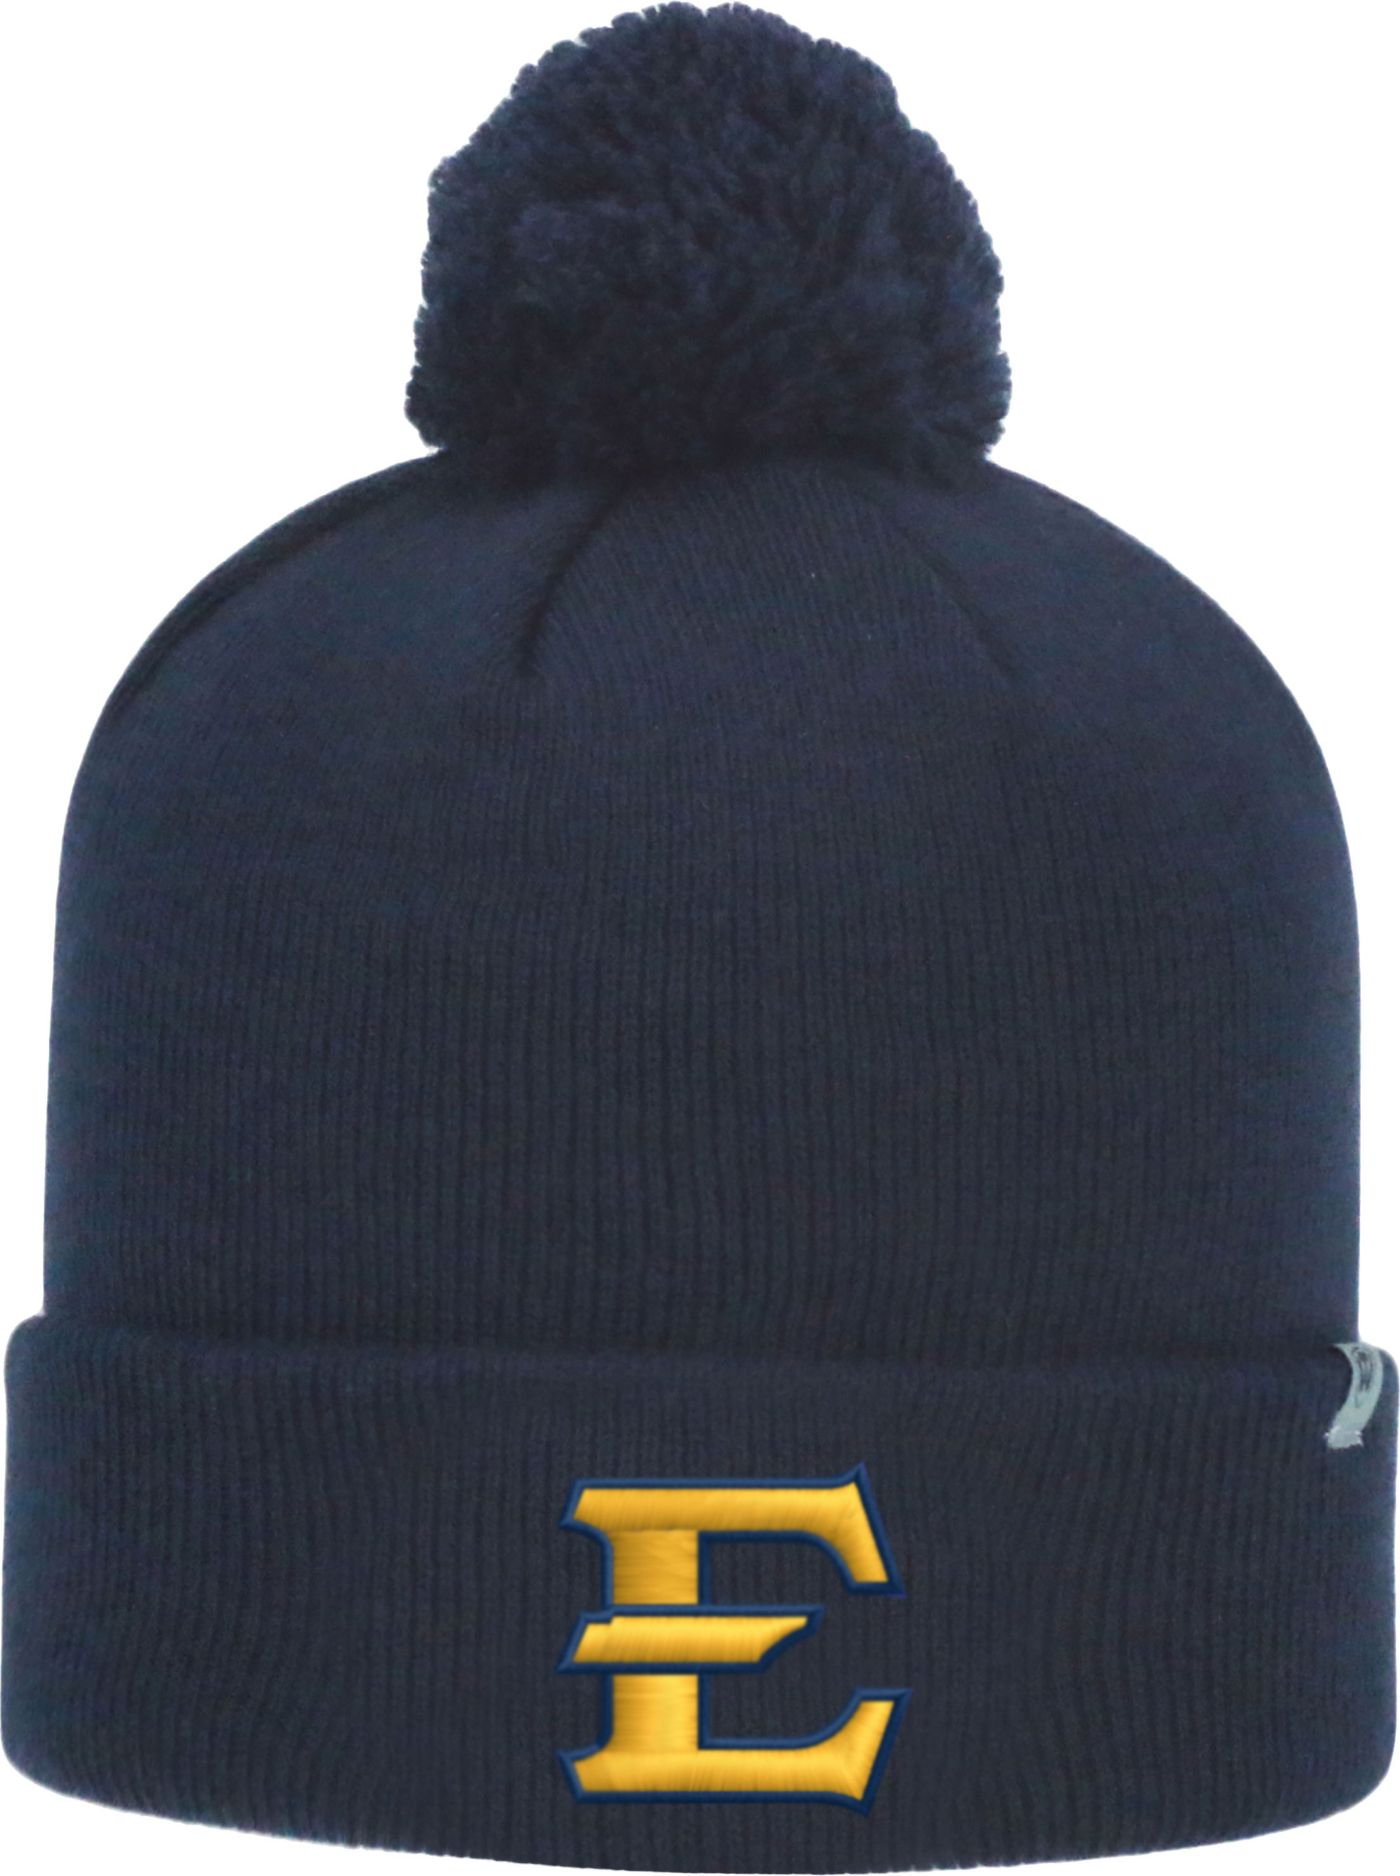 Top of the World Men's East Tennessee State Buccaneers Navy Pom Knit Beanie